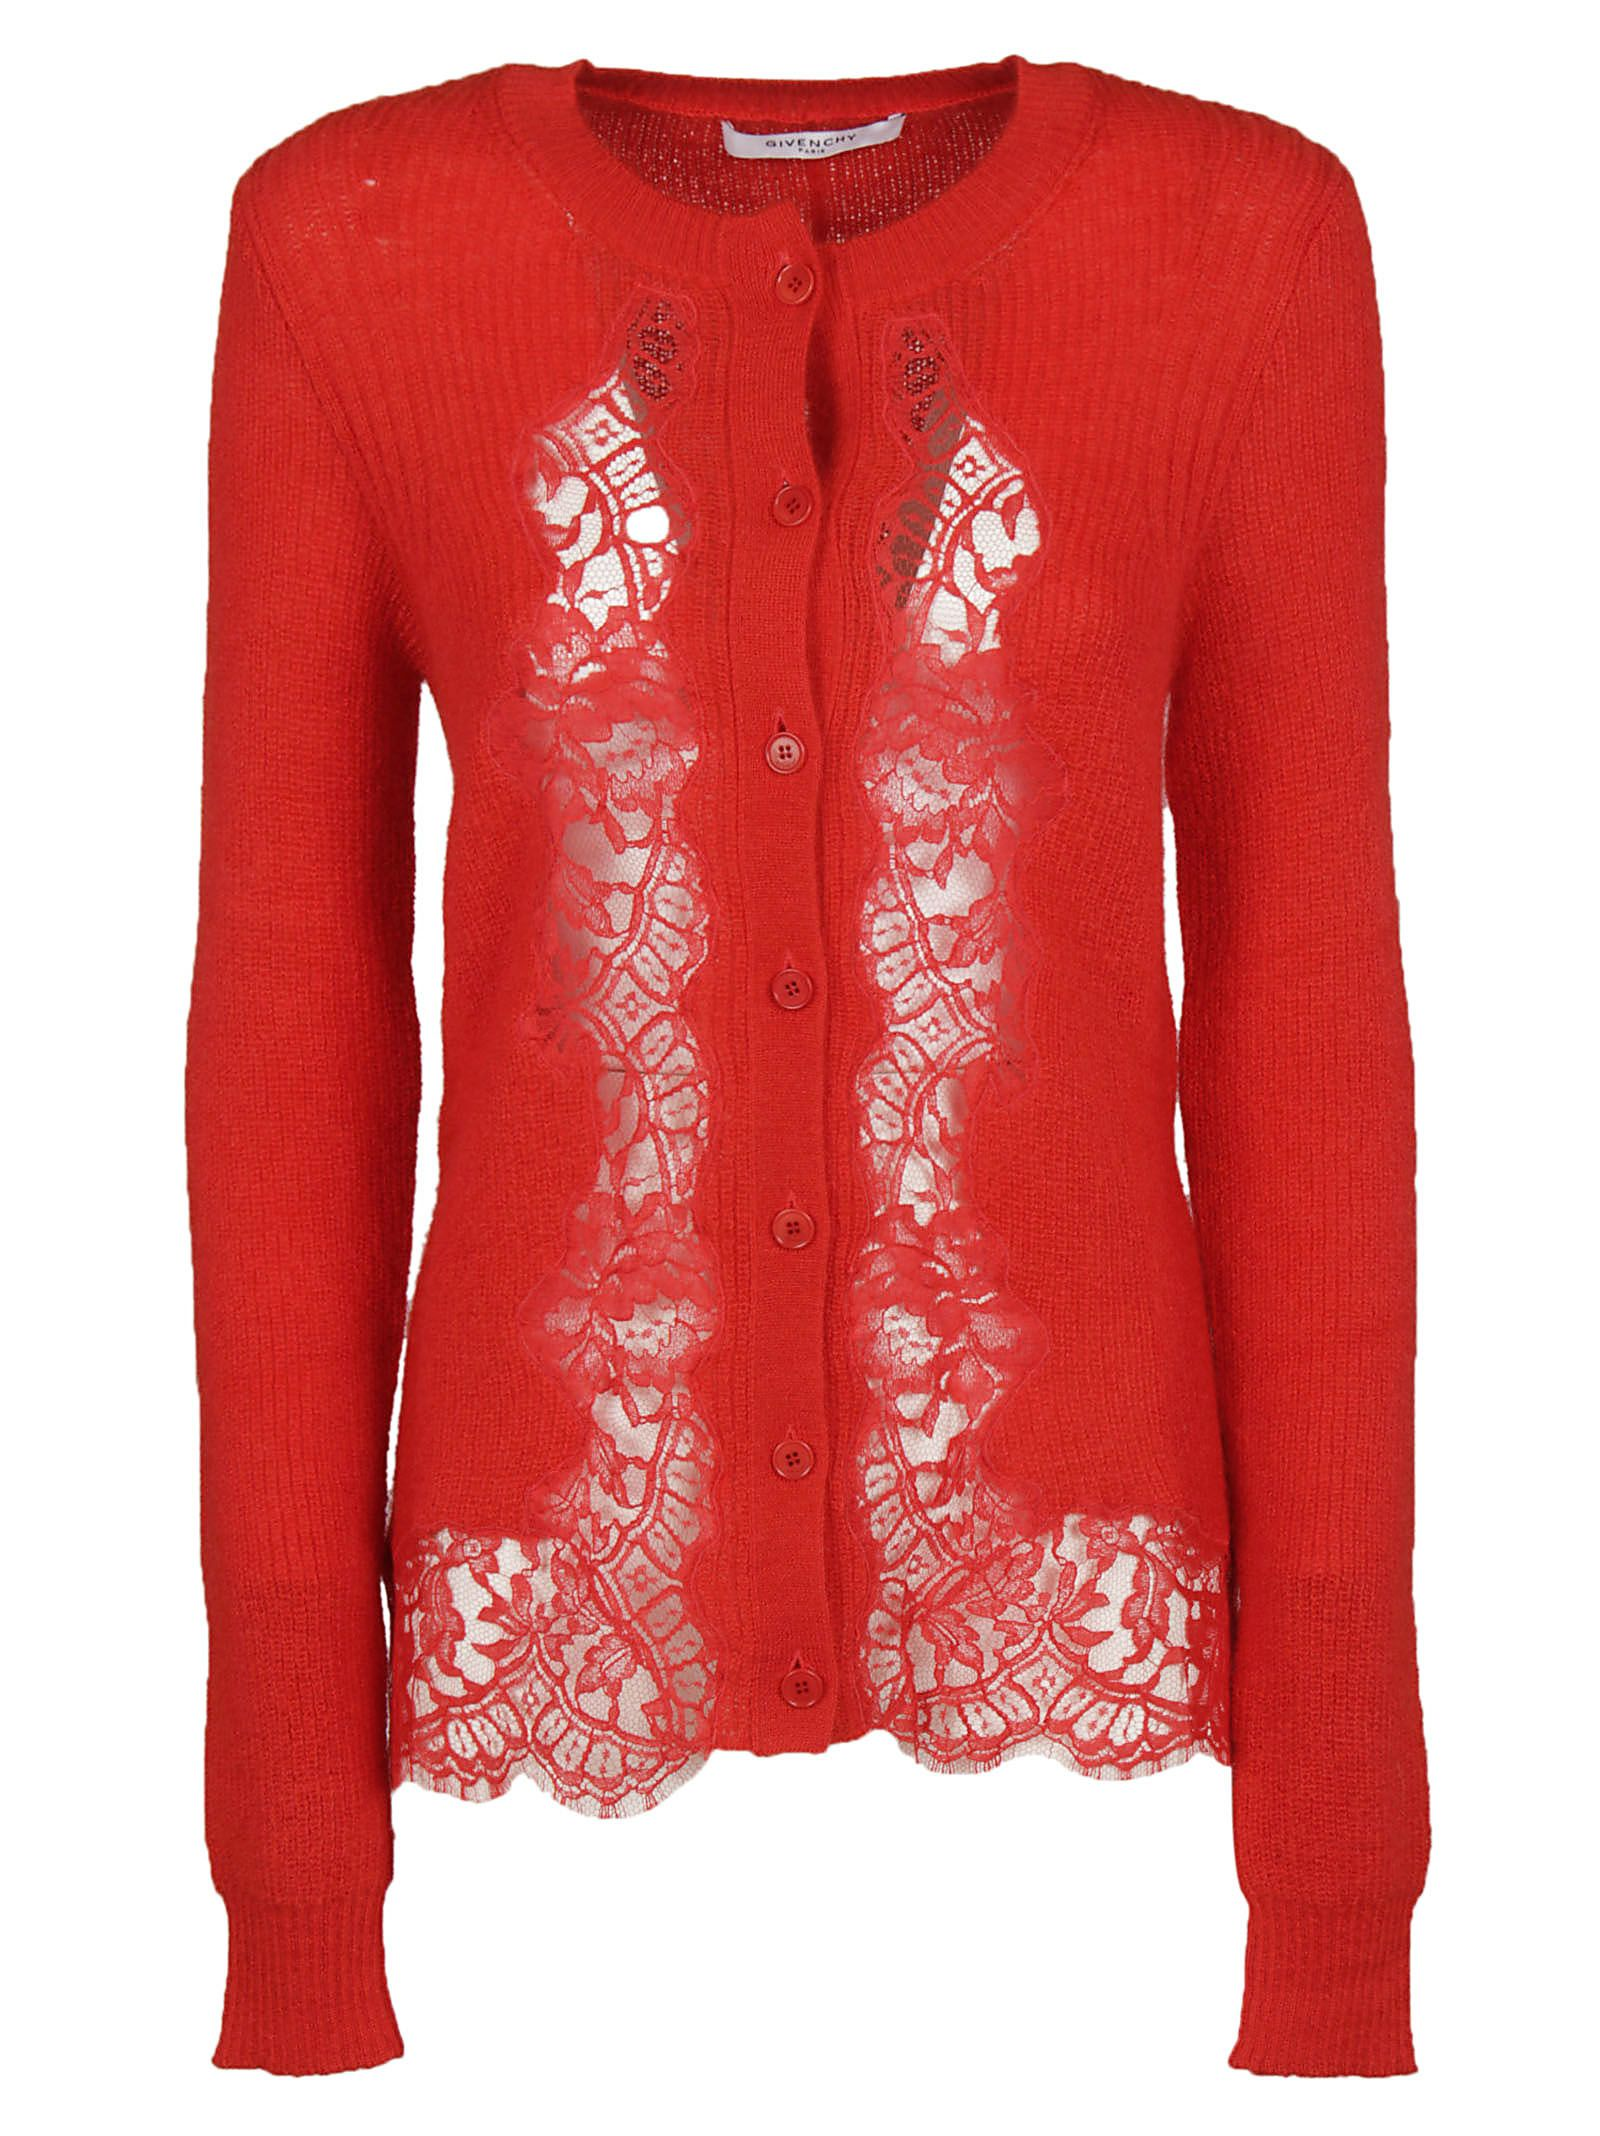 Givenchy Lace Inset Cardigan